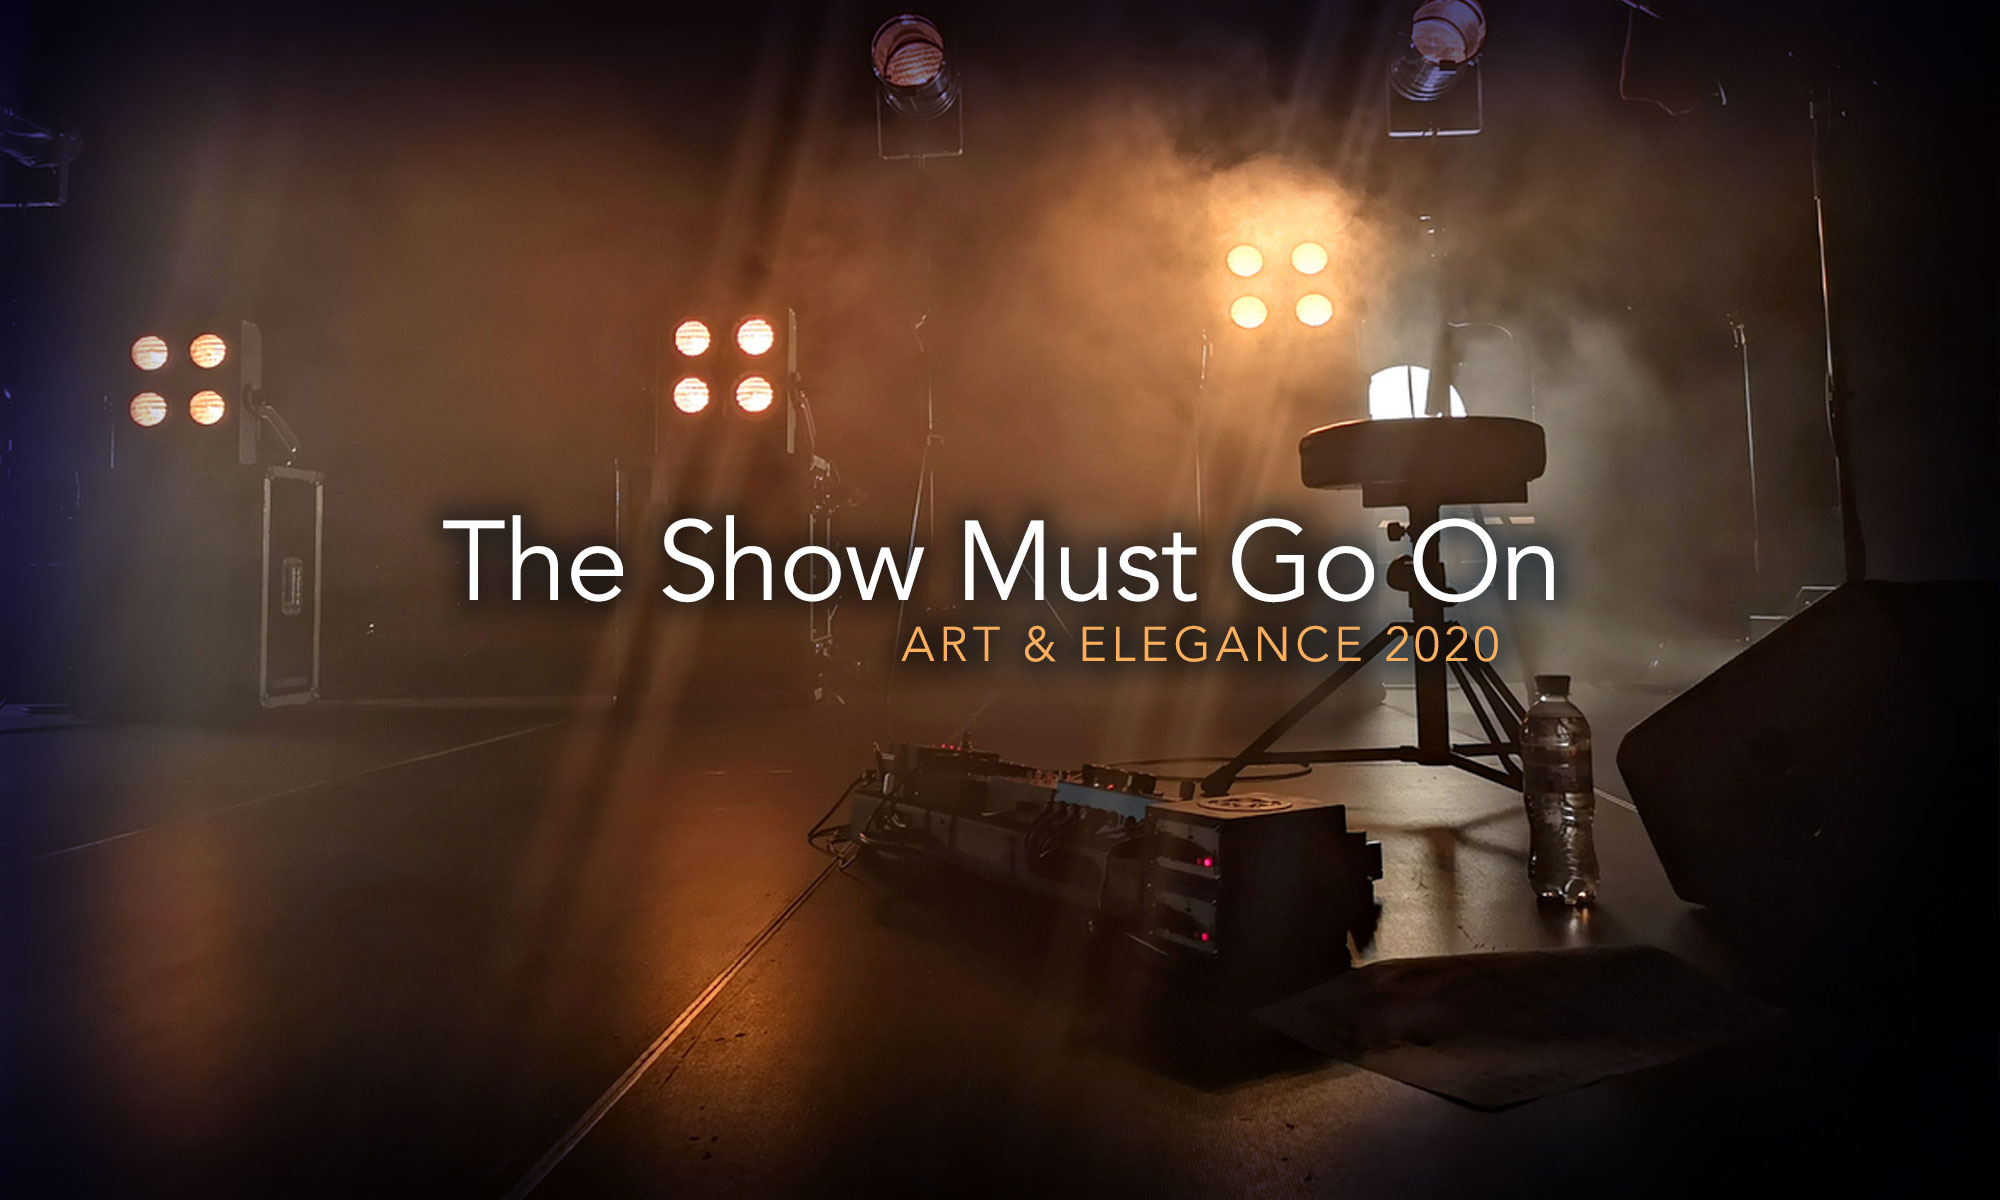 The Show Must Go On - Art and Elegance 2020